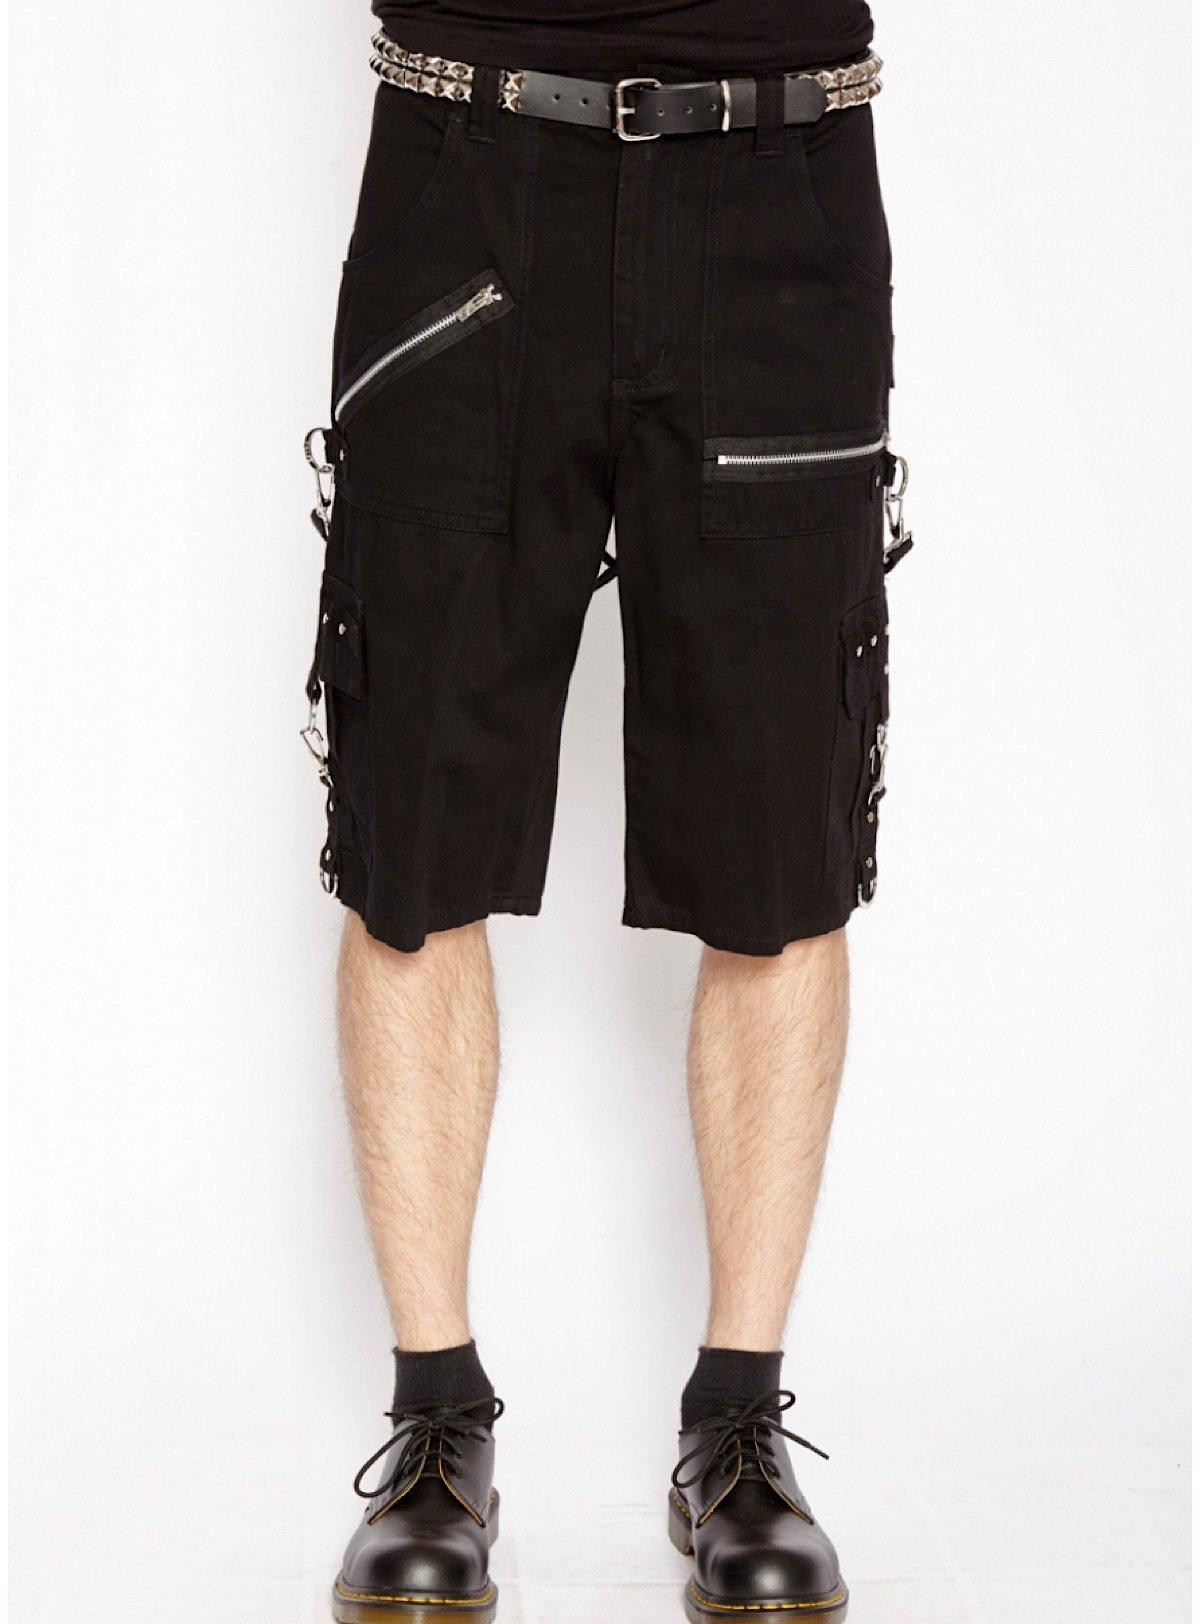 Buyer's Choice Shorts - Bondage - Black - IS3095S